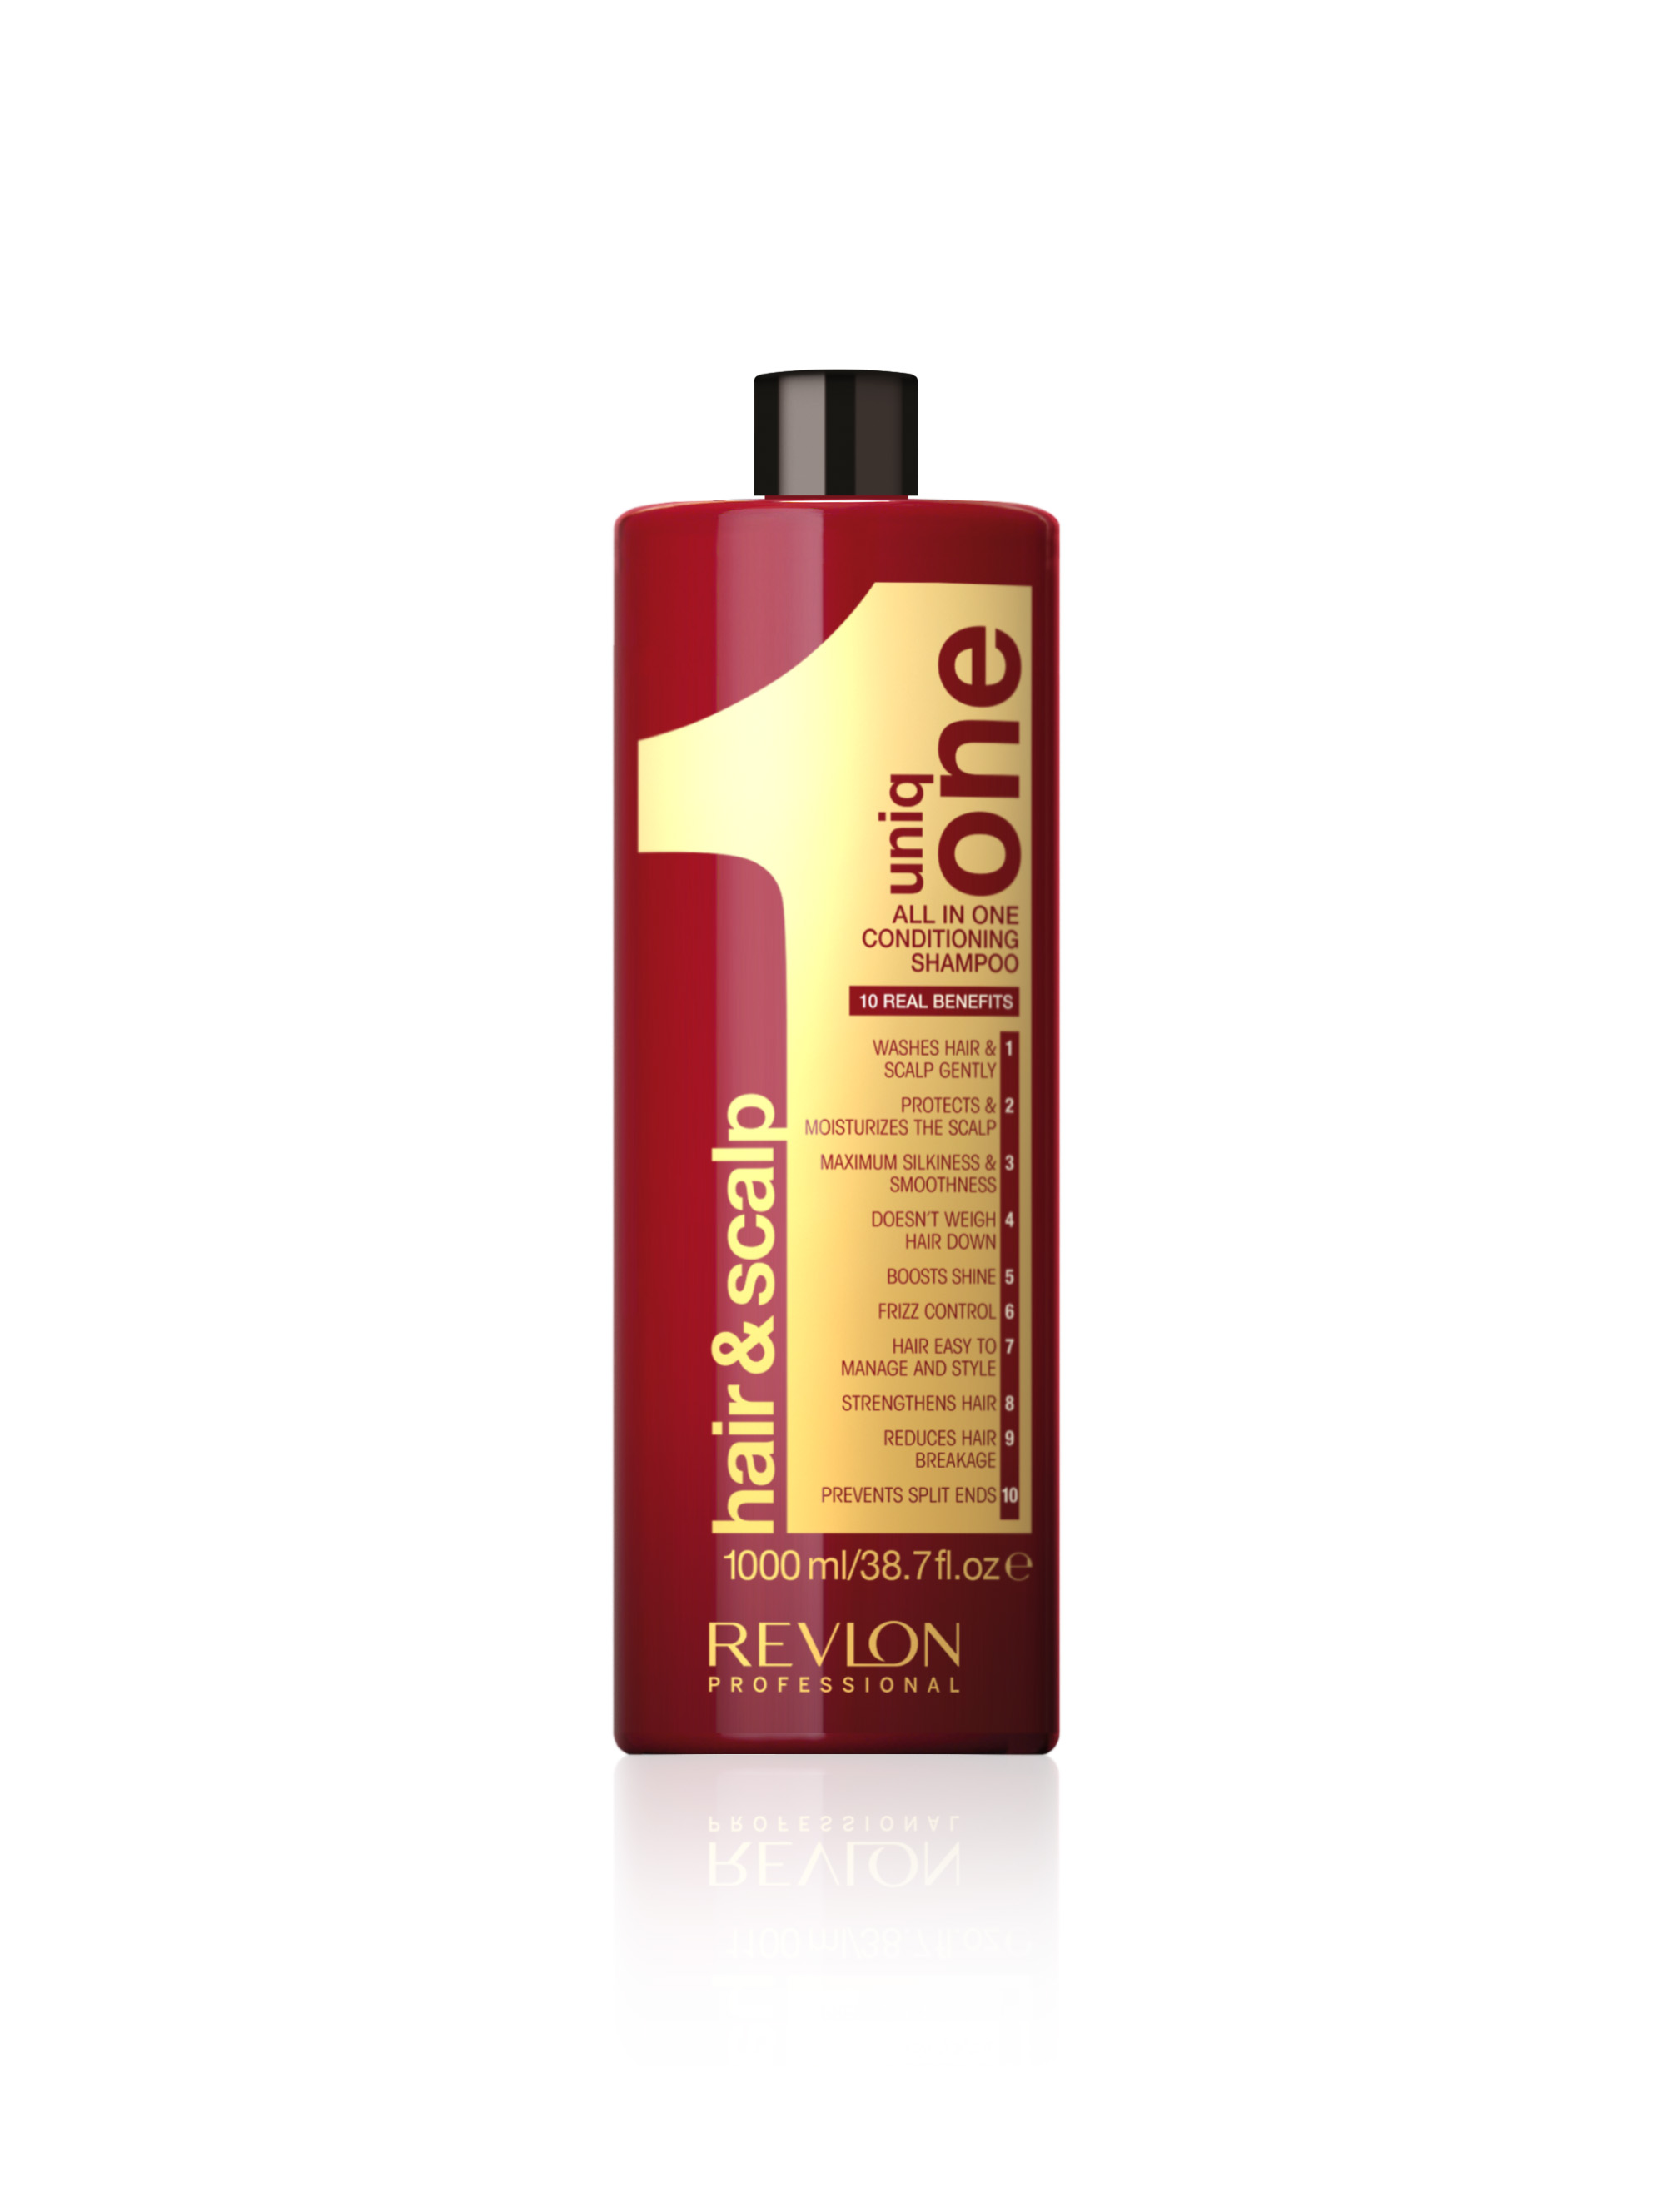 REVLON Professional Шампунь-кондиционер для воллос / UNIQ ONE SHAMPOO 1000мл revlon professional uniq one all in one conditioning shampoo 6 300 мл